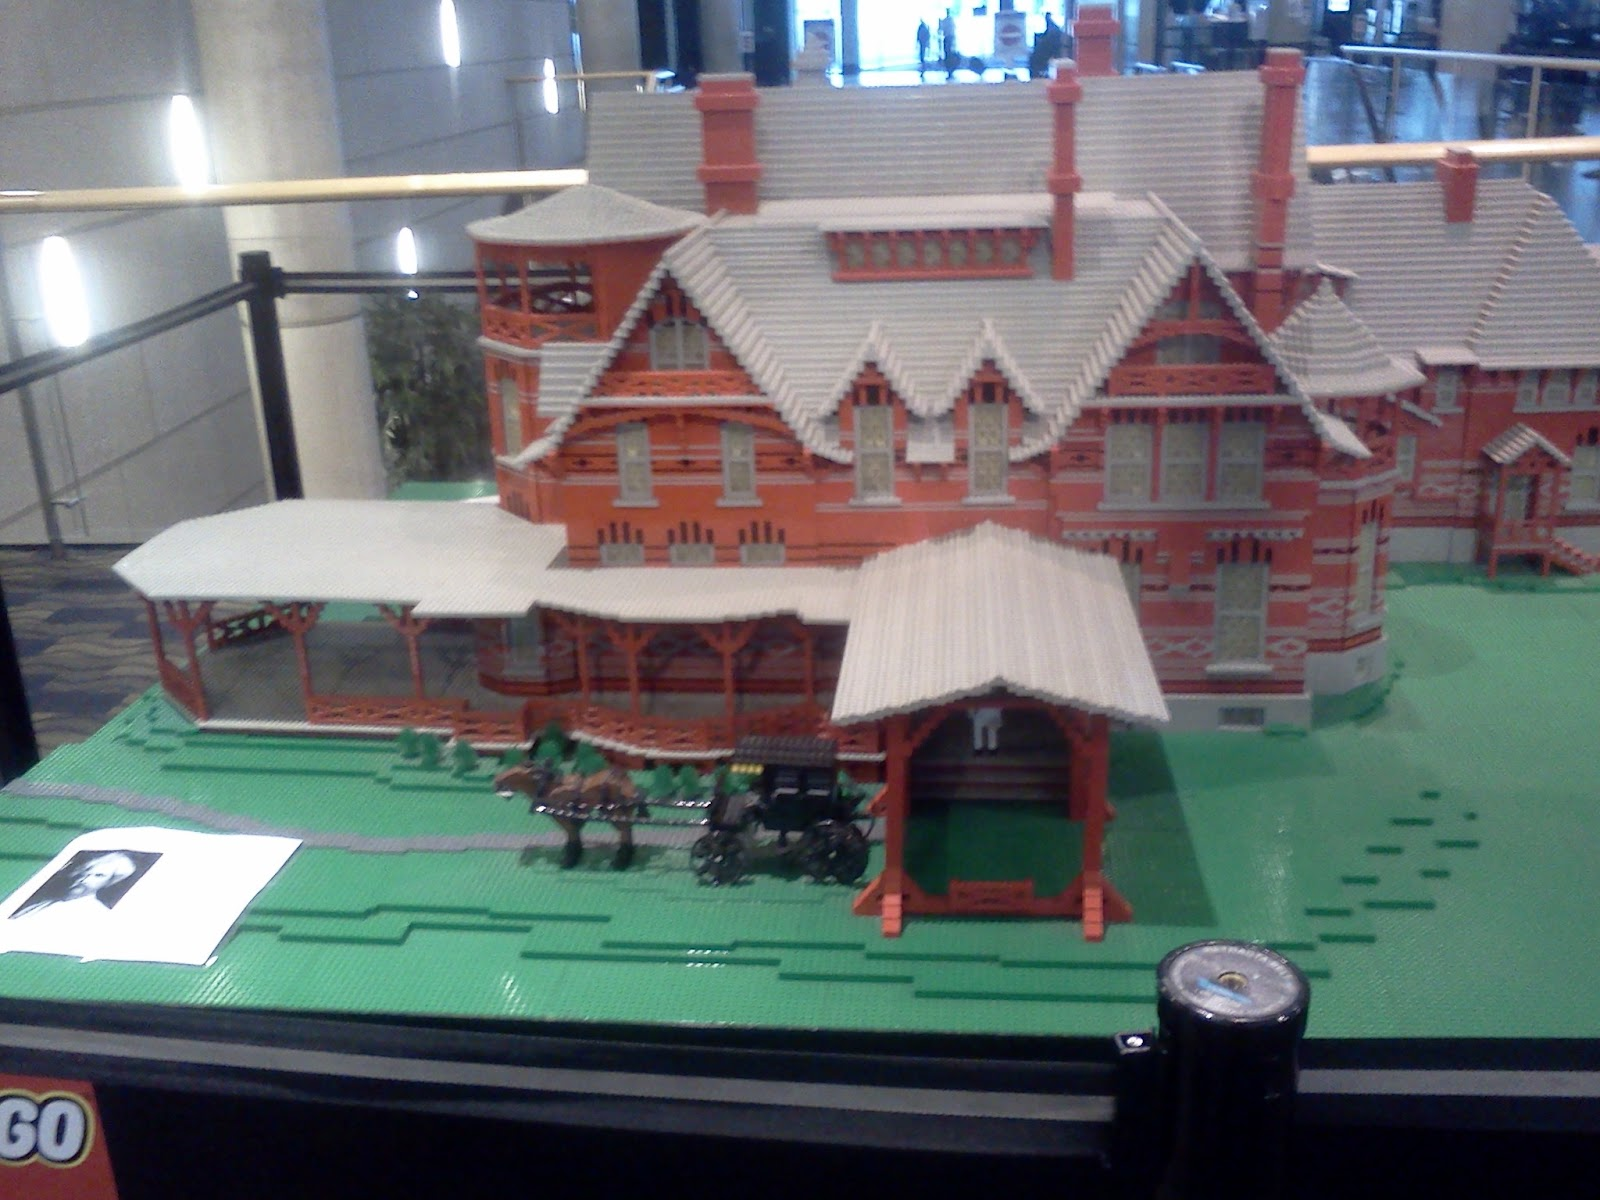 Mark Twain Lego House